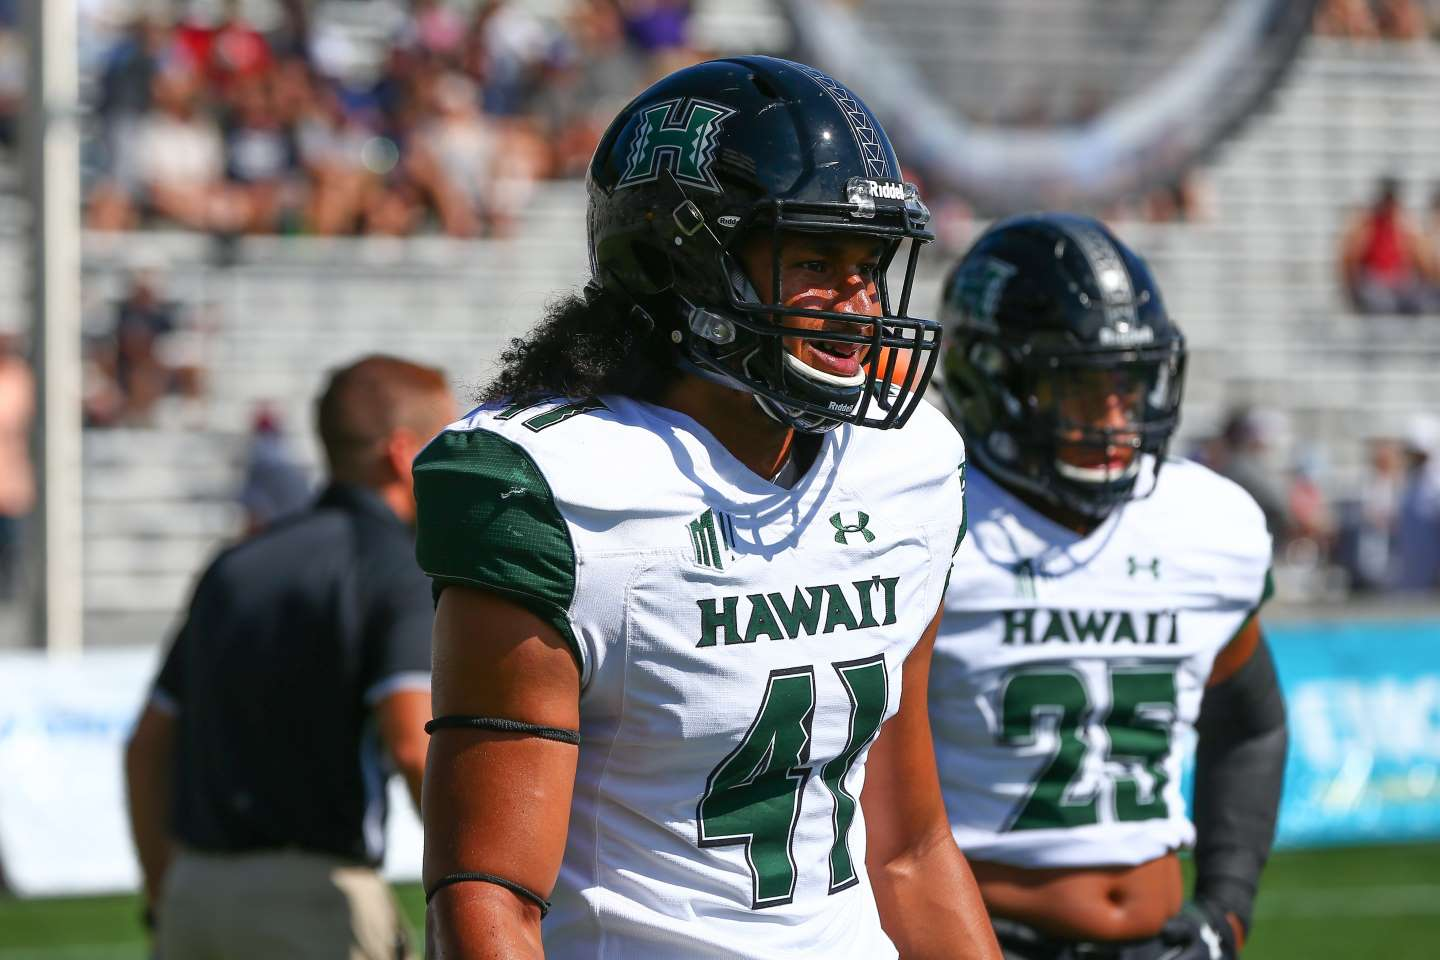 Hawaii linebacker Sanitoa dies at 21